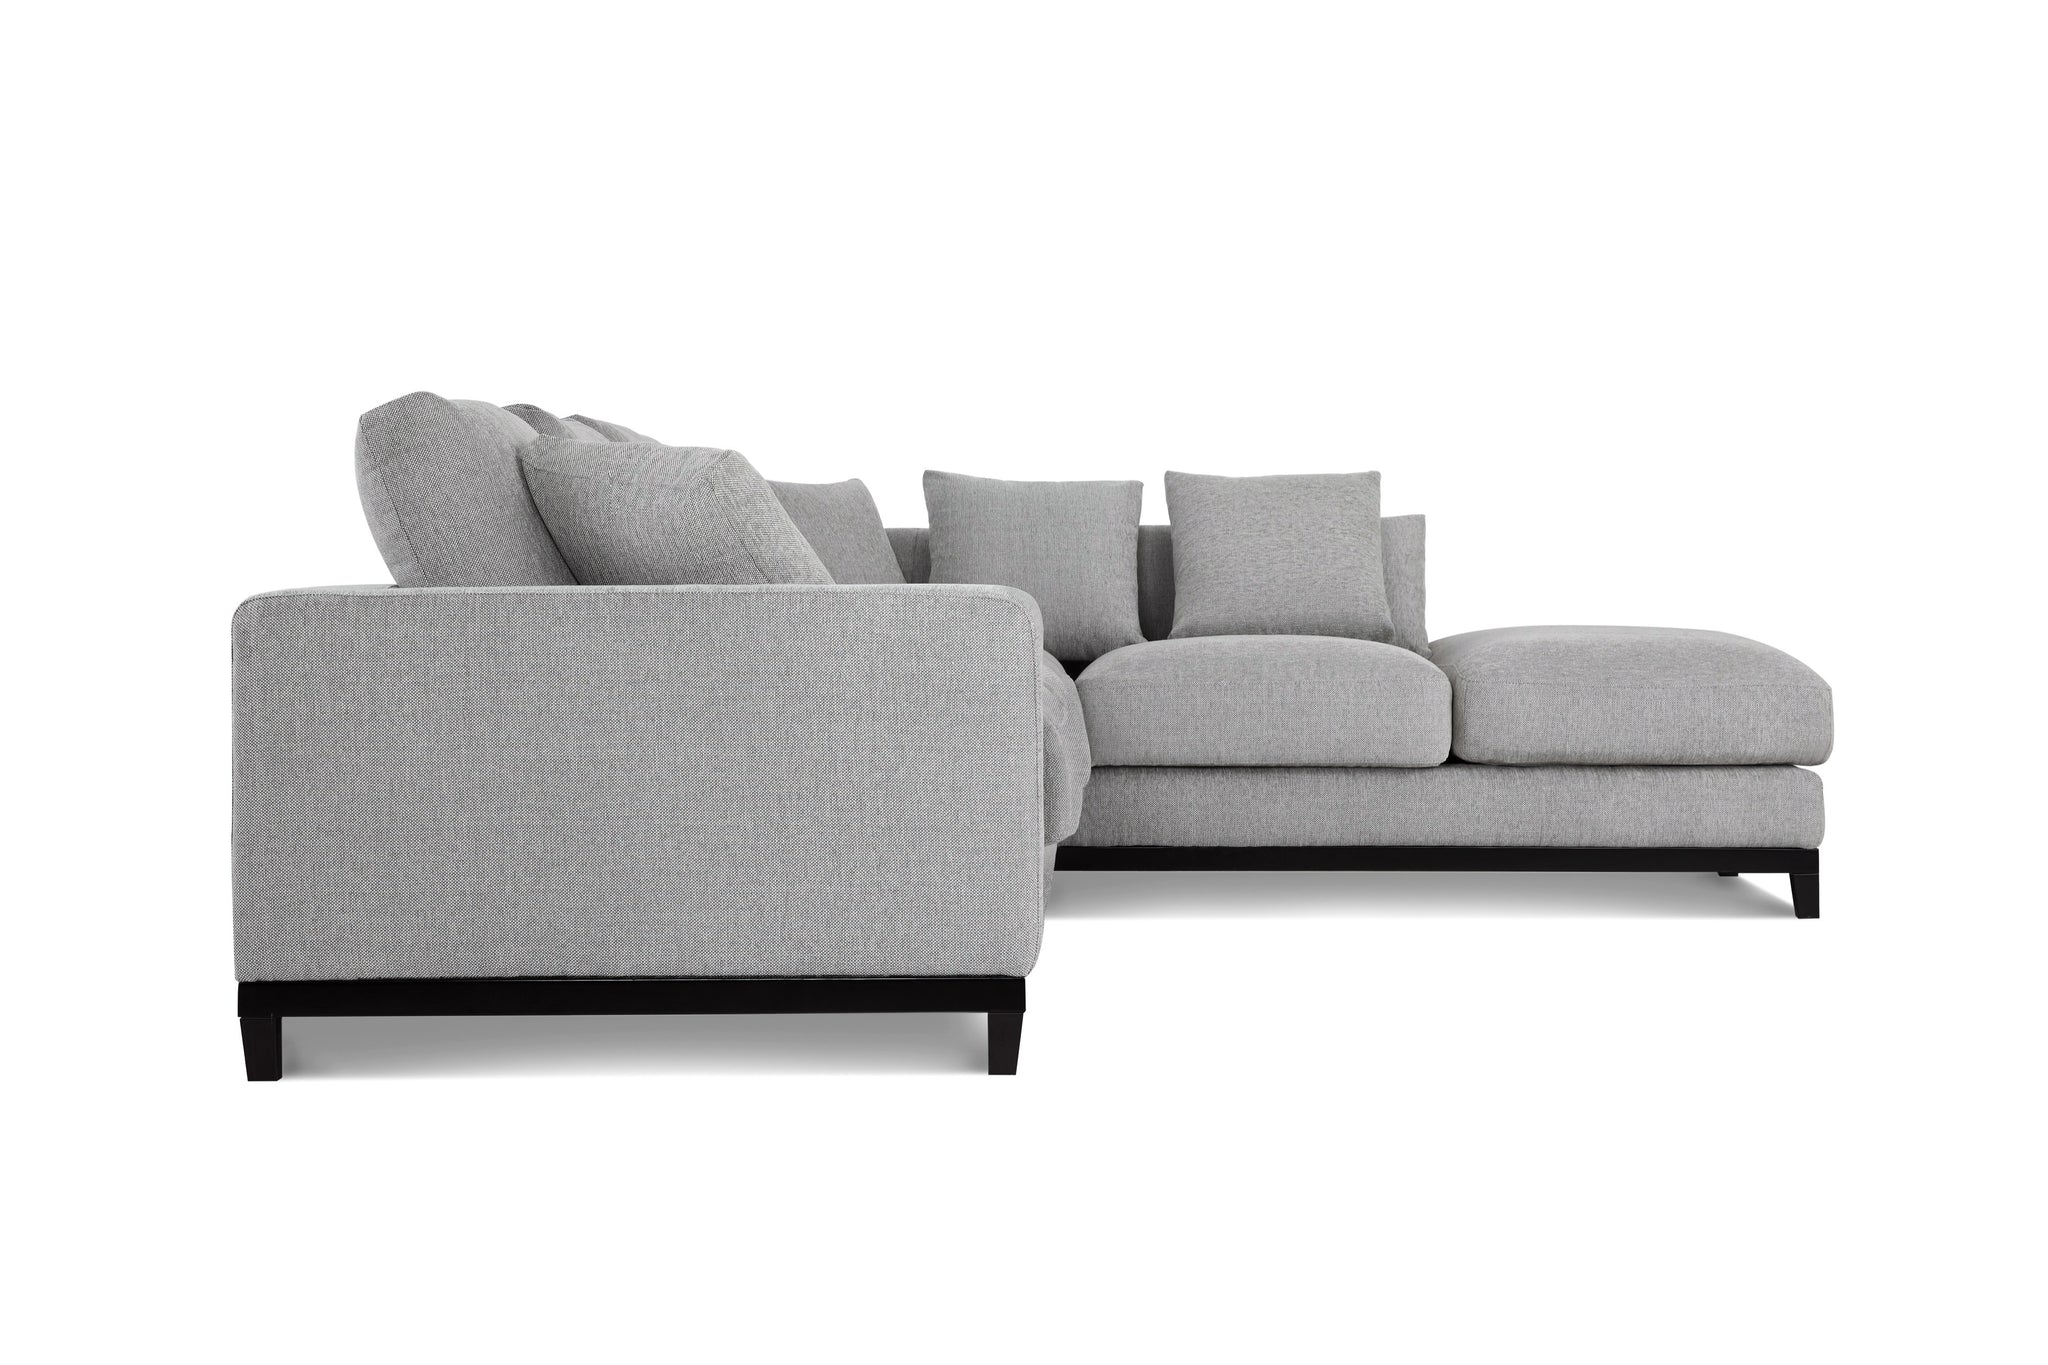 Capsule Home Kellan Sectional Sofa